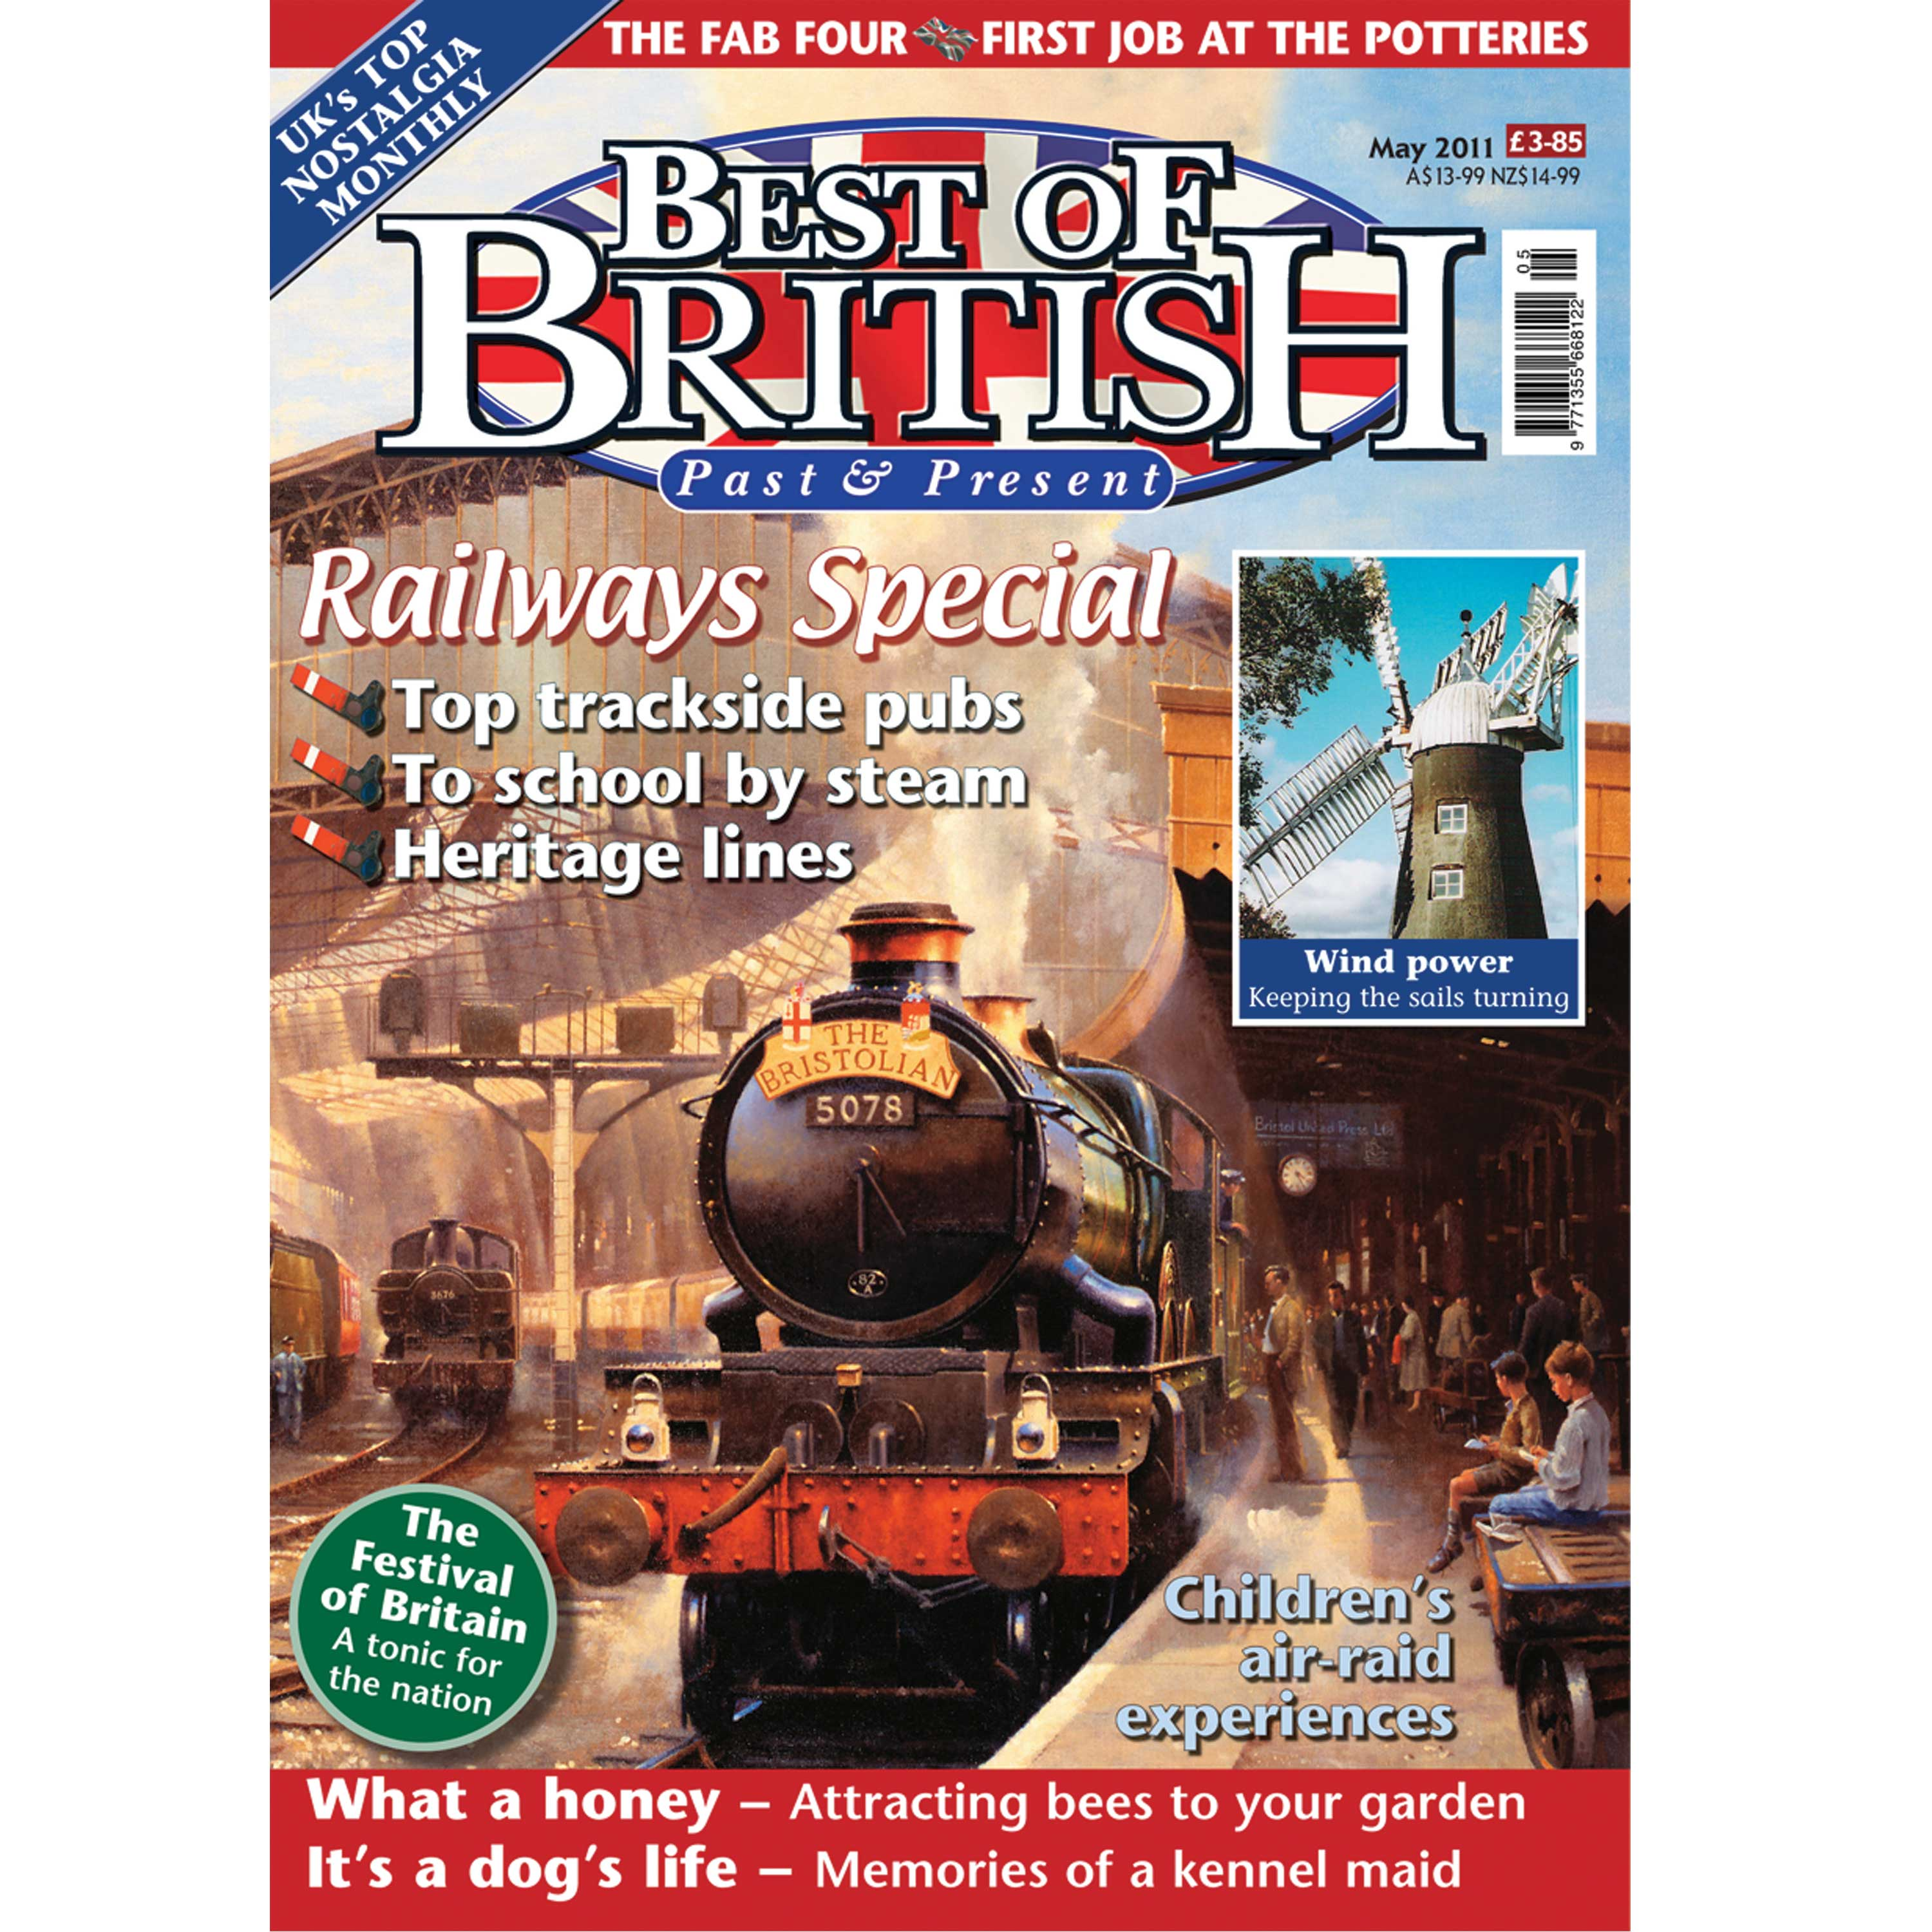 Issue 178 - MAY 2011